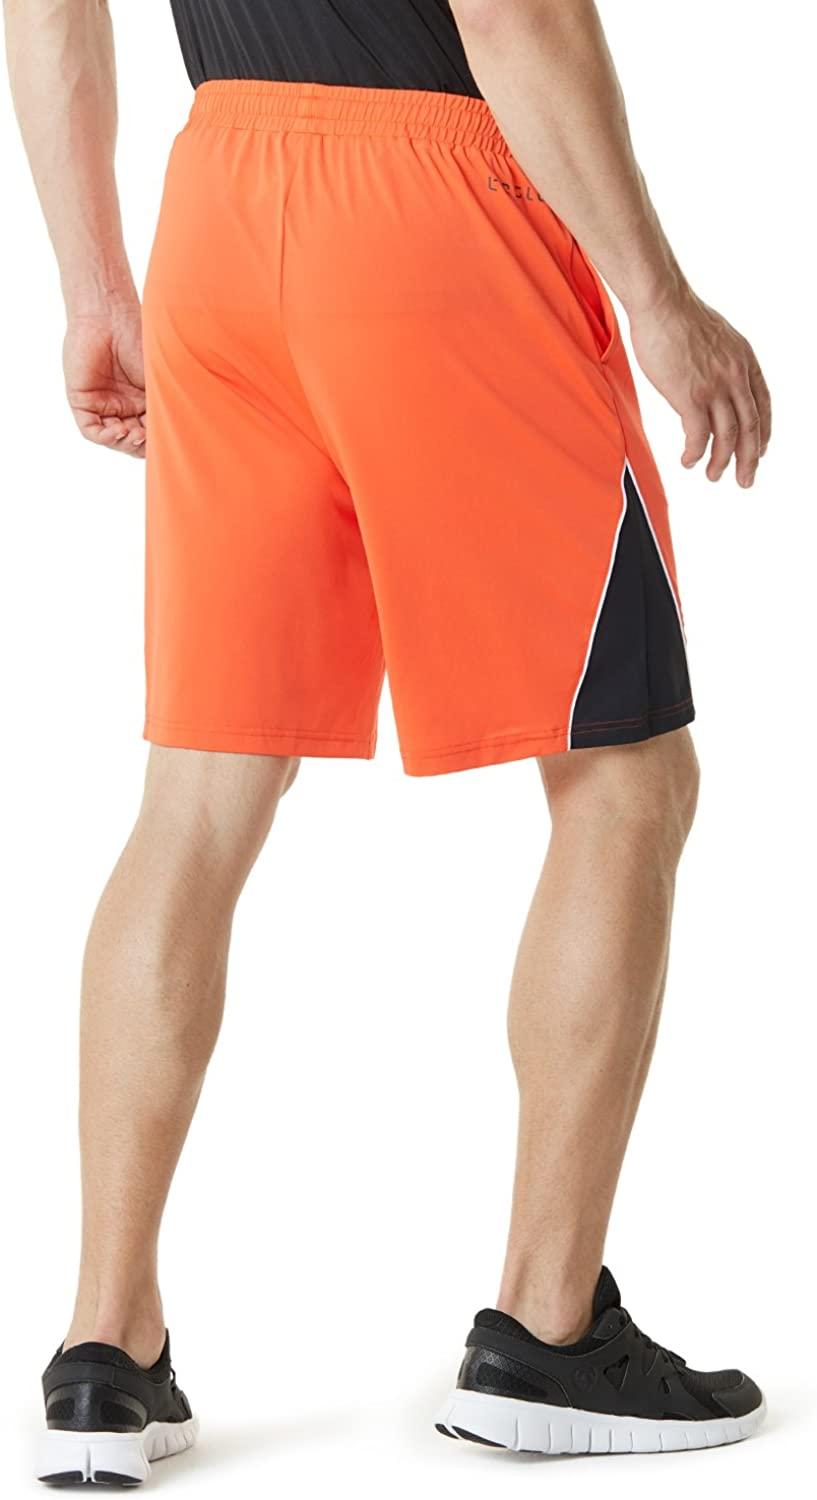 Quick Dry Athletic Shorts with Pockets 7 Inch Basketball Gym Training Workout Shorts TSLA Mens Active Running Shorts